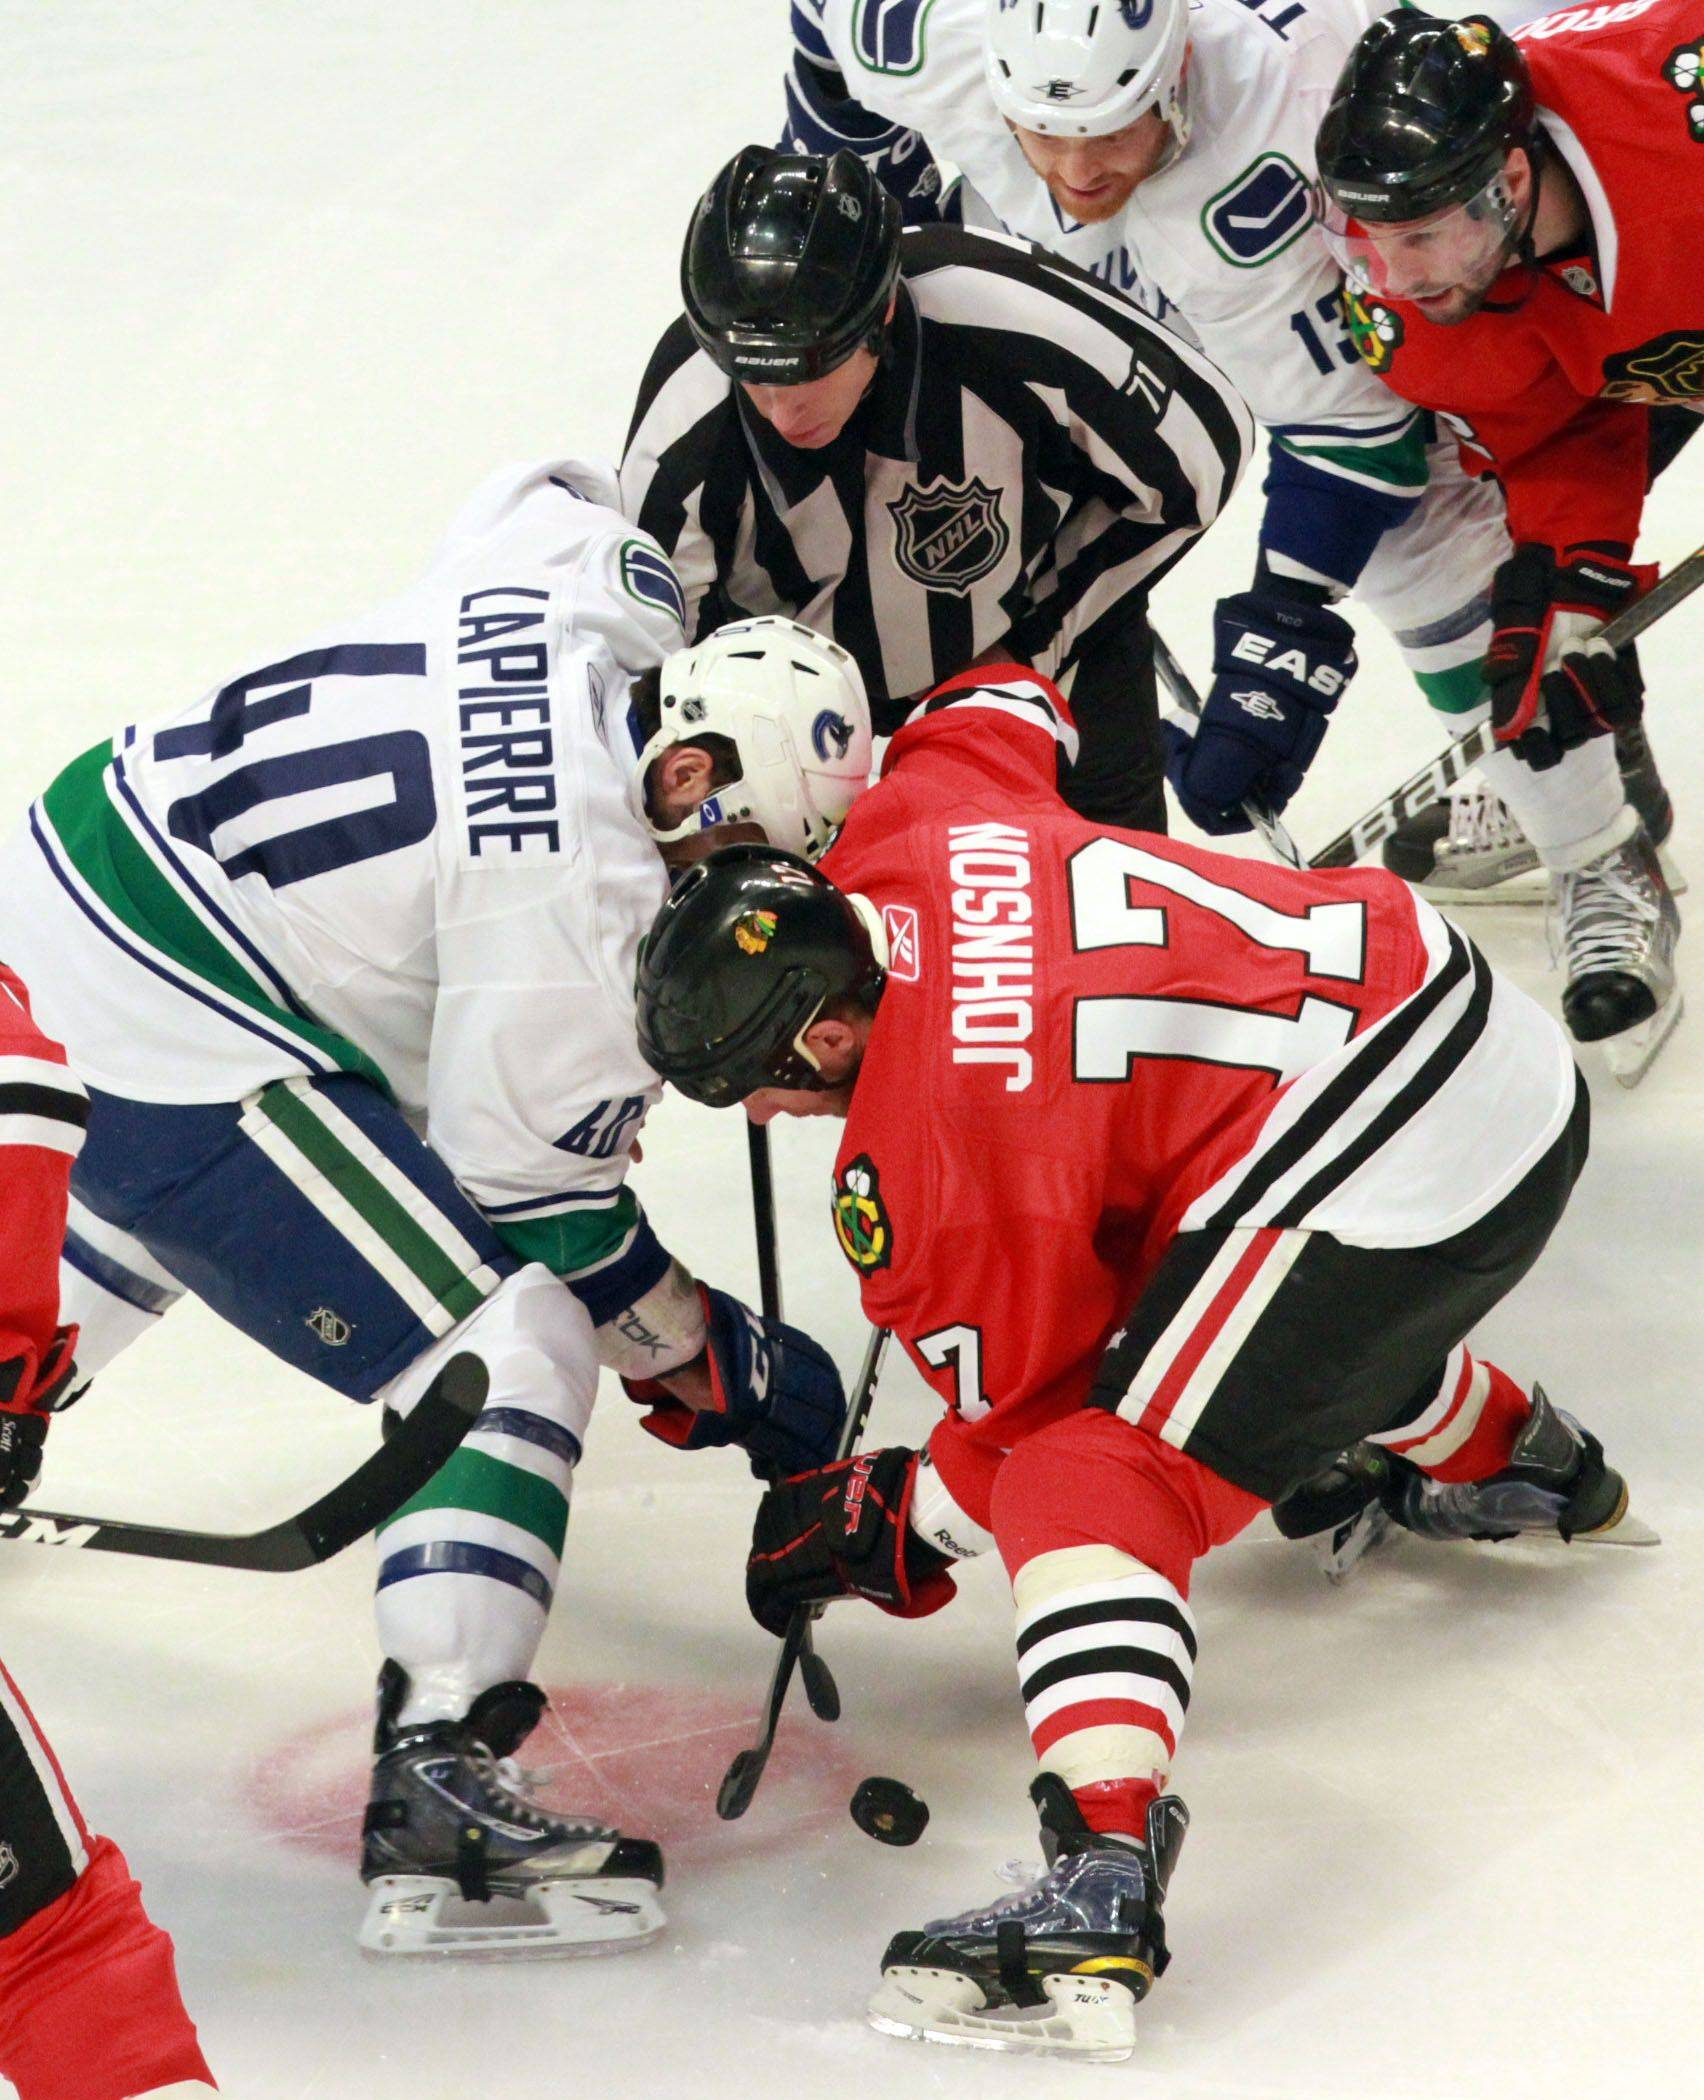 George LeClaire/gleclaire@dailyherald.com Chicago Blackhawks' Ryan Johnson in a face off with Vancouver Canucks' Maxium Lapierre in game 6 of the Stanley Cup quarterfinals at the United Center in Chicago on Sunday.